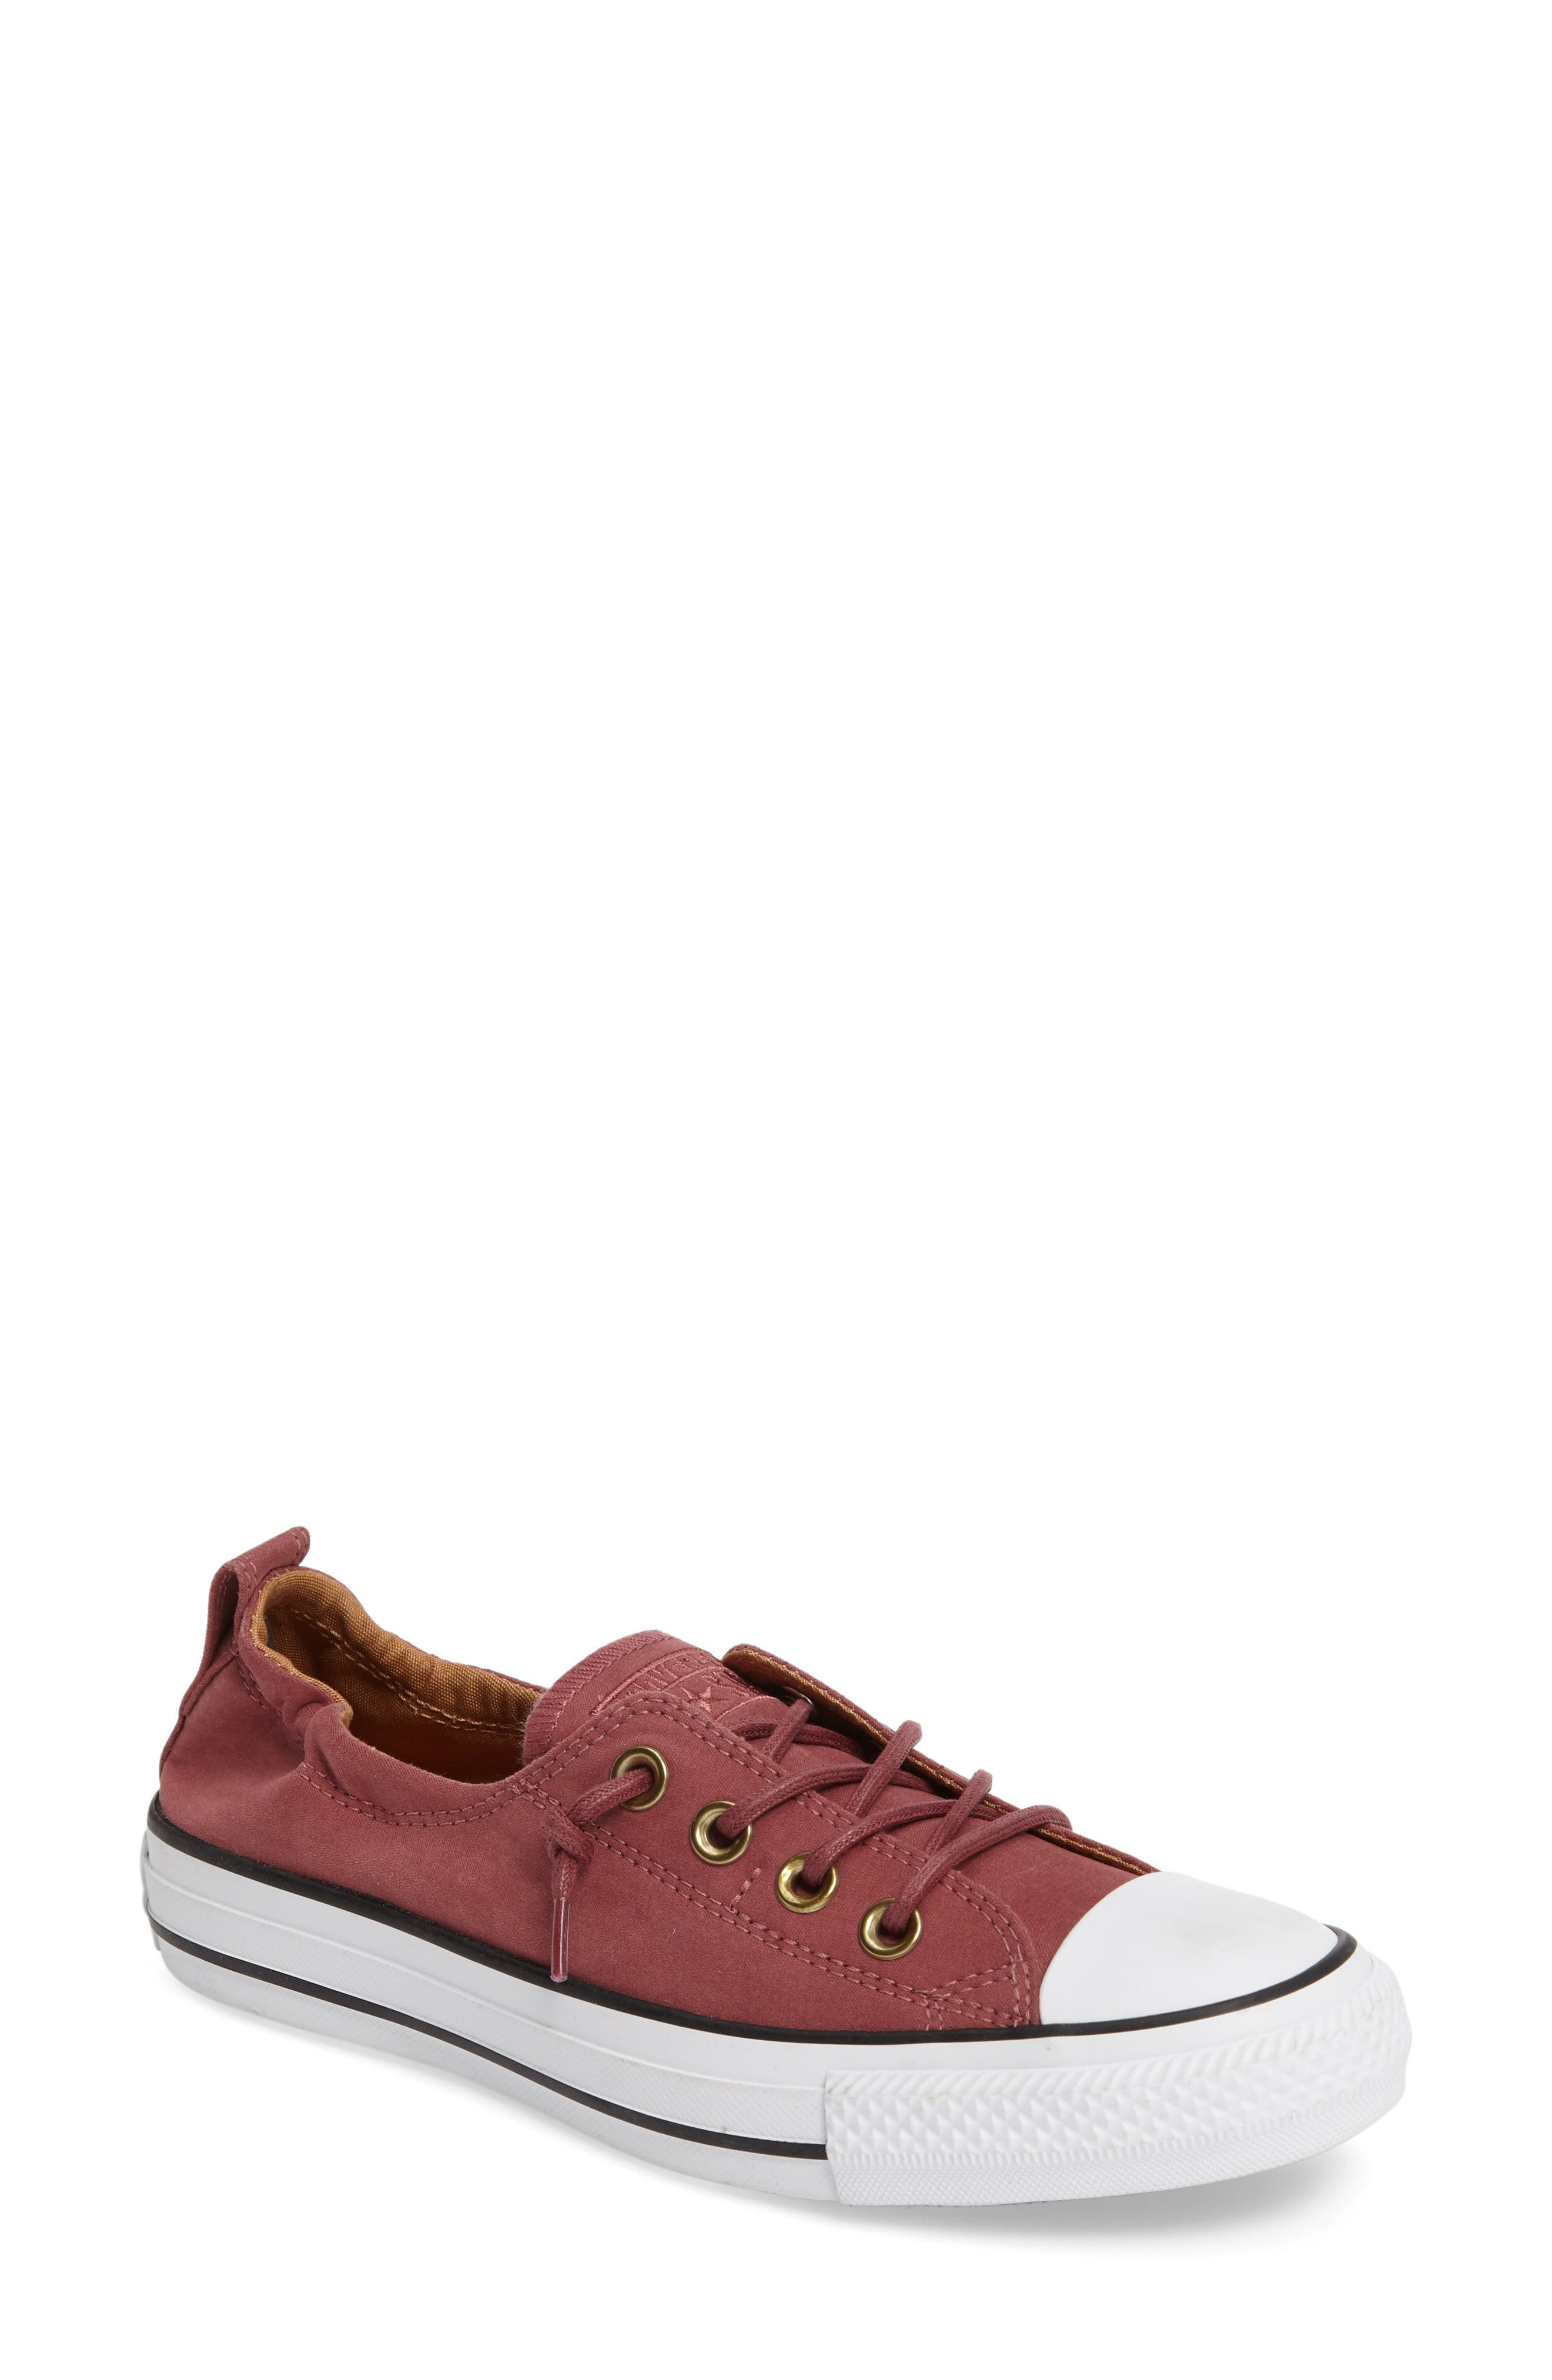 Alternate Image 1 Selected - Converse Chuck Taylor® All Star® Shoreline Peached Twill Sneaker (Women)